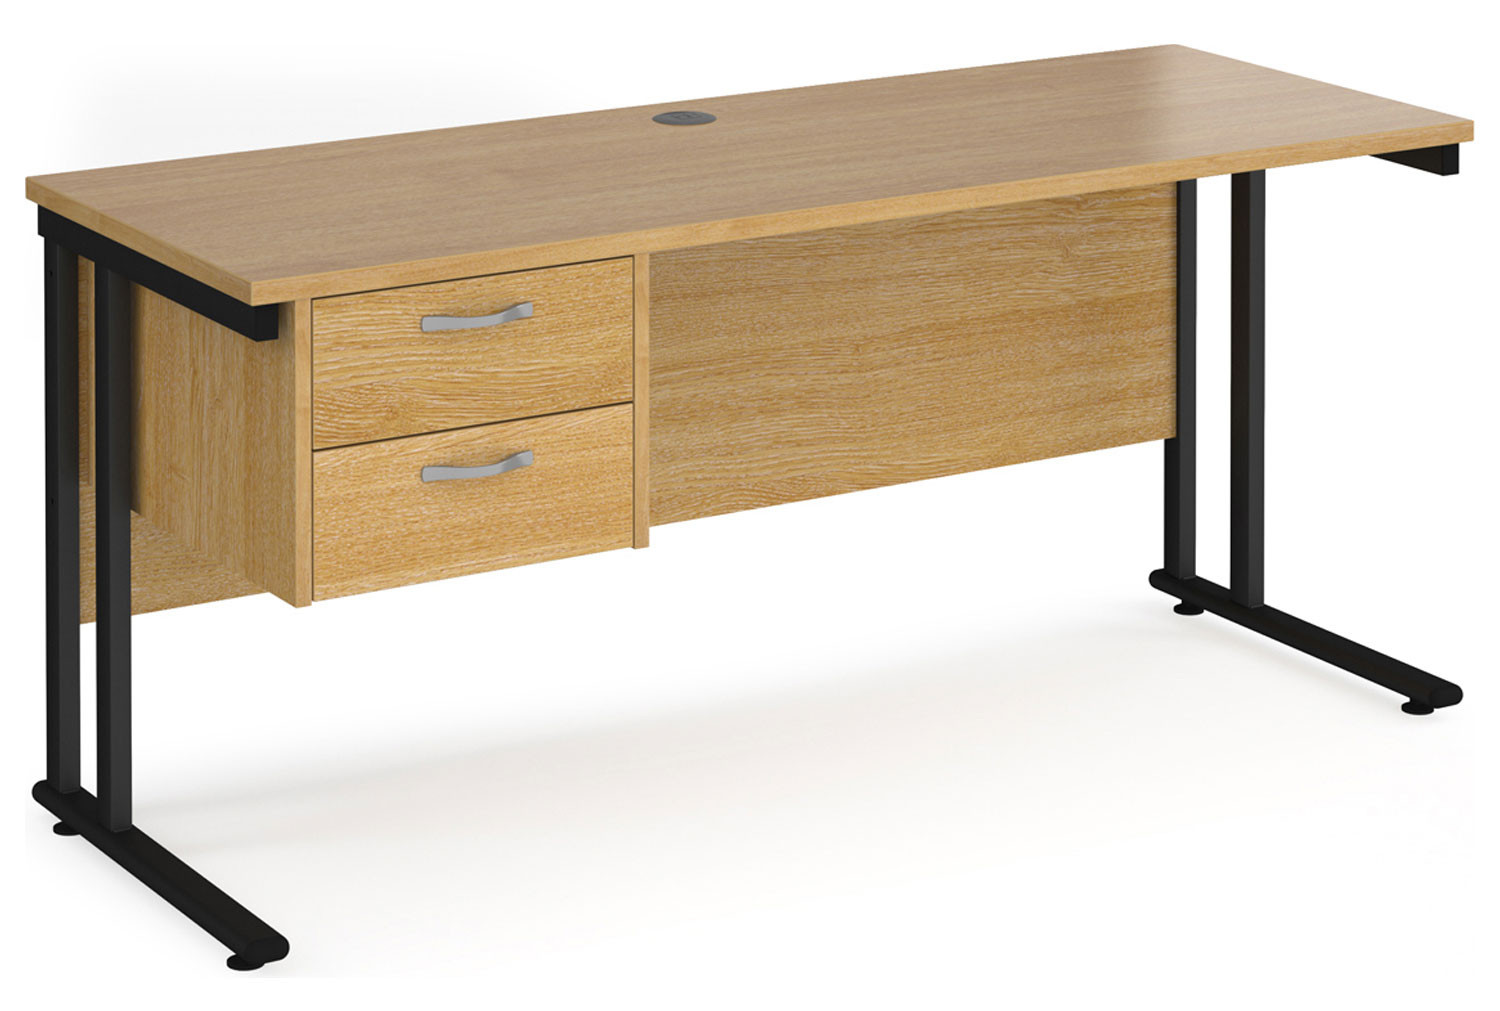 Alcott C-Leg Narrow Rectangular Home Desk With Pedestal